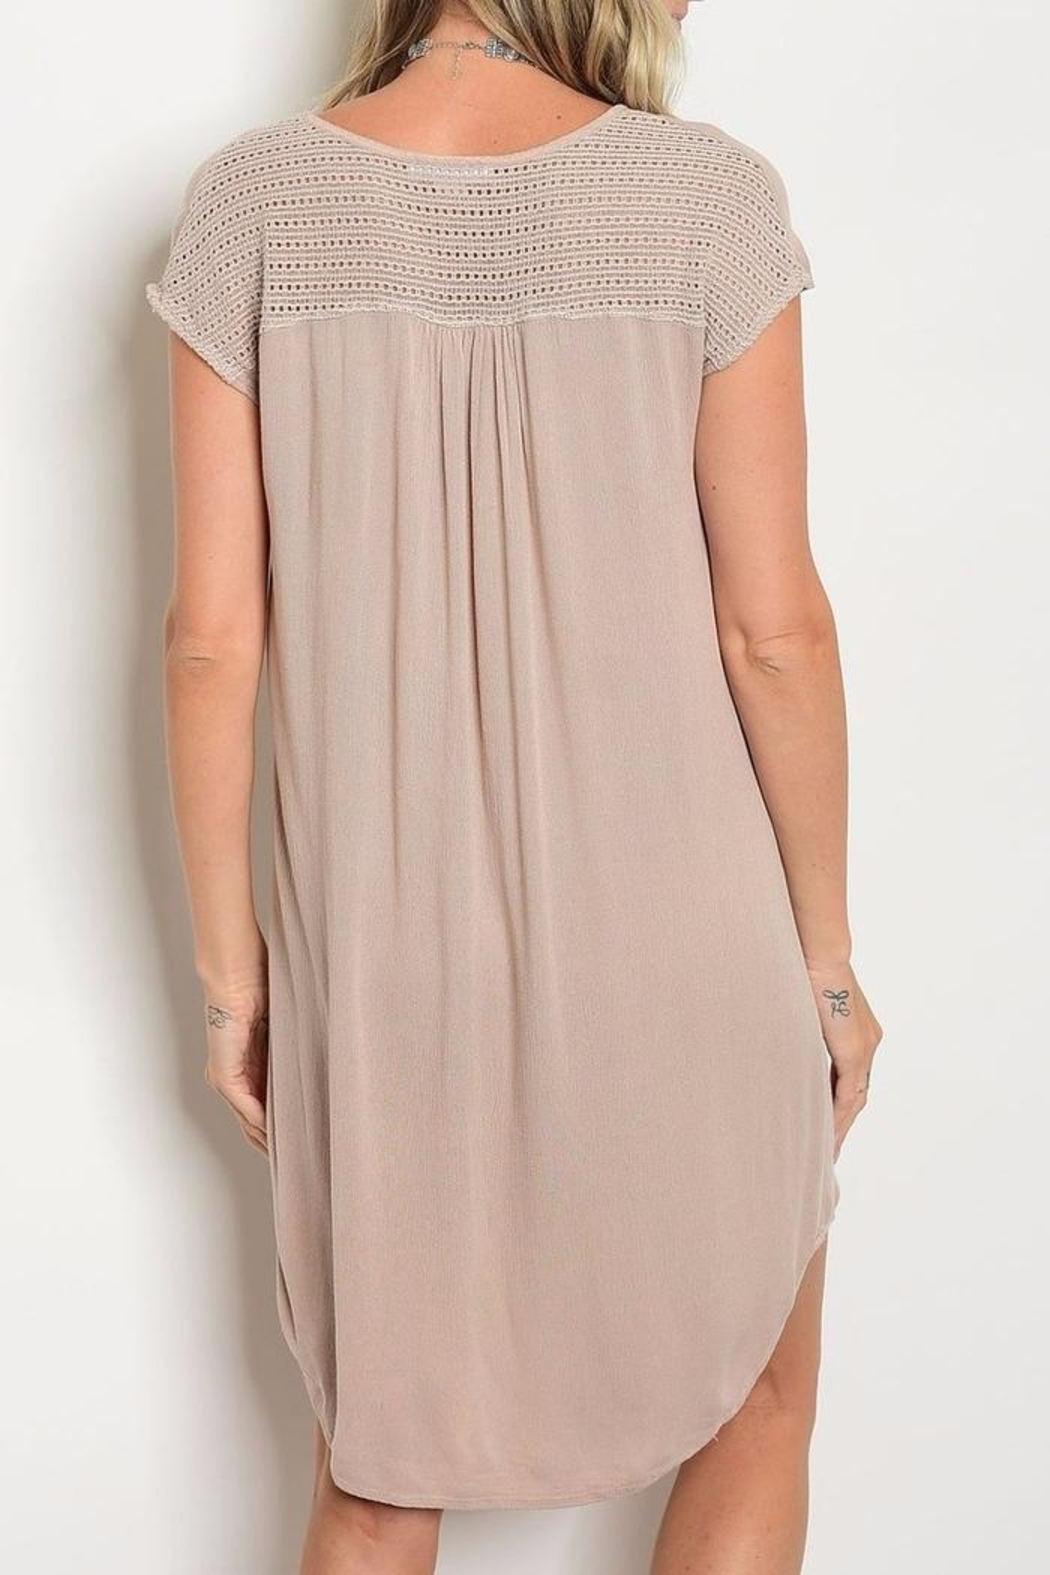 LoveRiche Mineral Wash Tunic Dress - Side Cropped Image